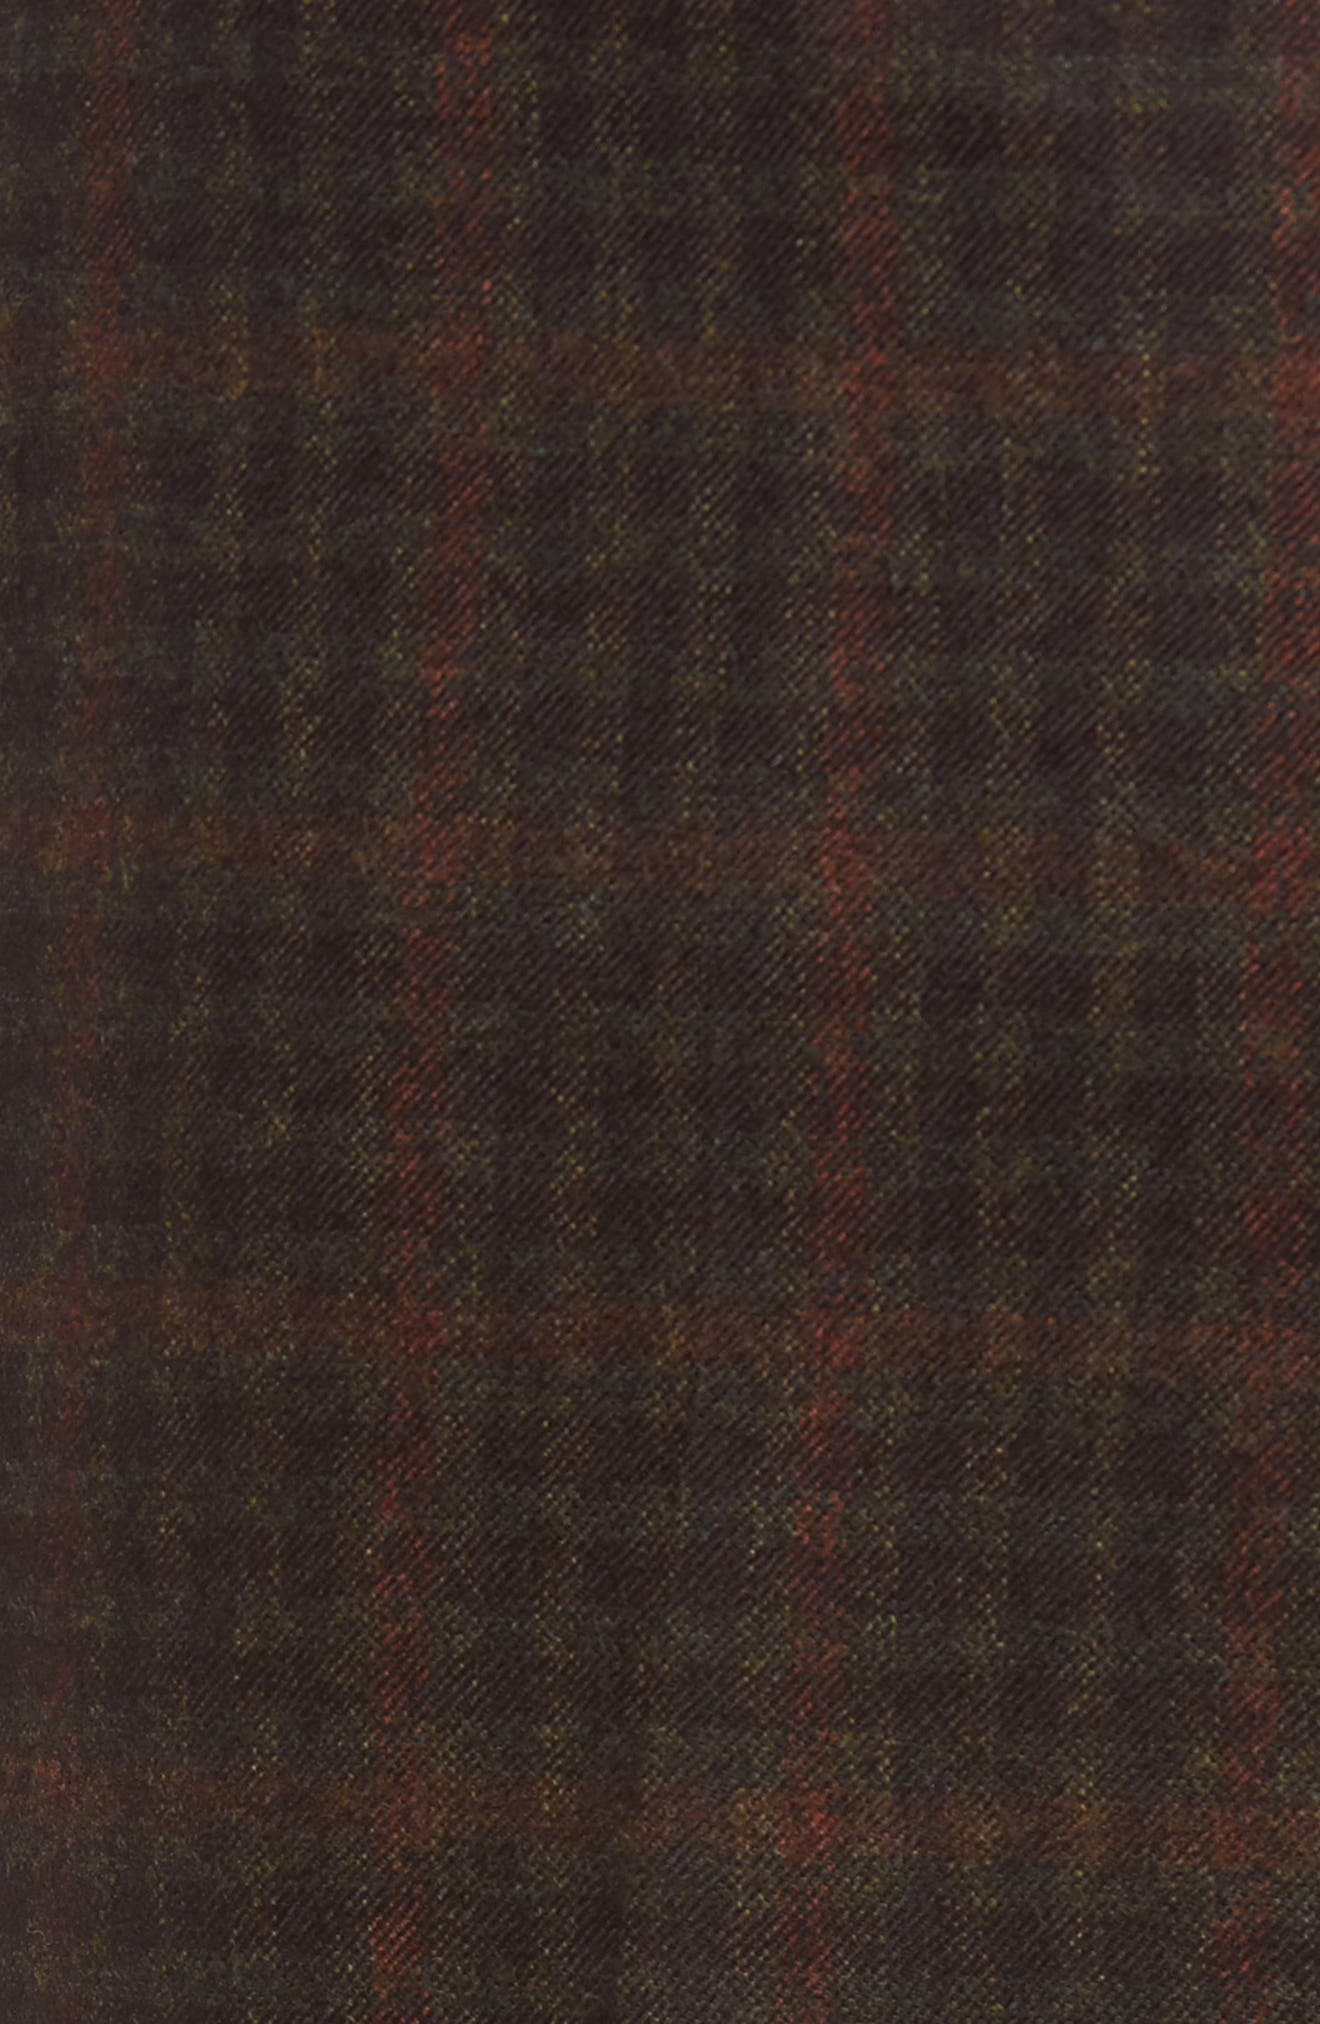 Flat Front Plaid Wool Trousers,                             Alternate thumbnail 2, color,                             200